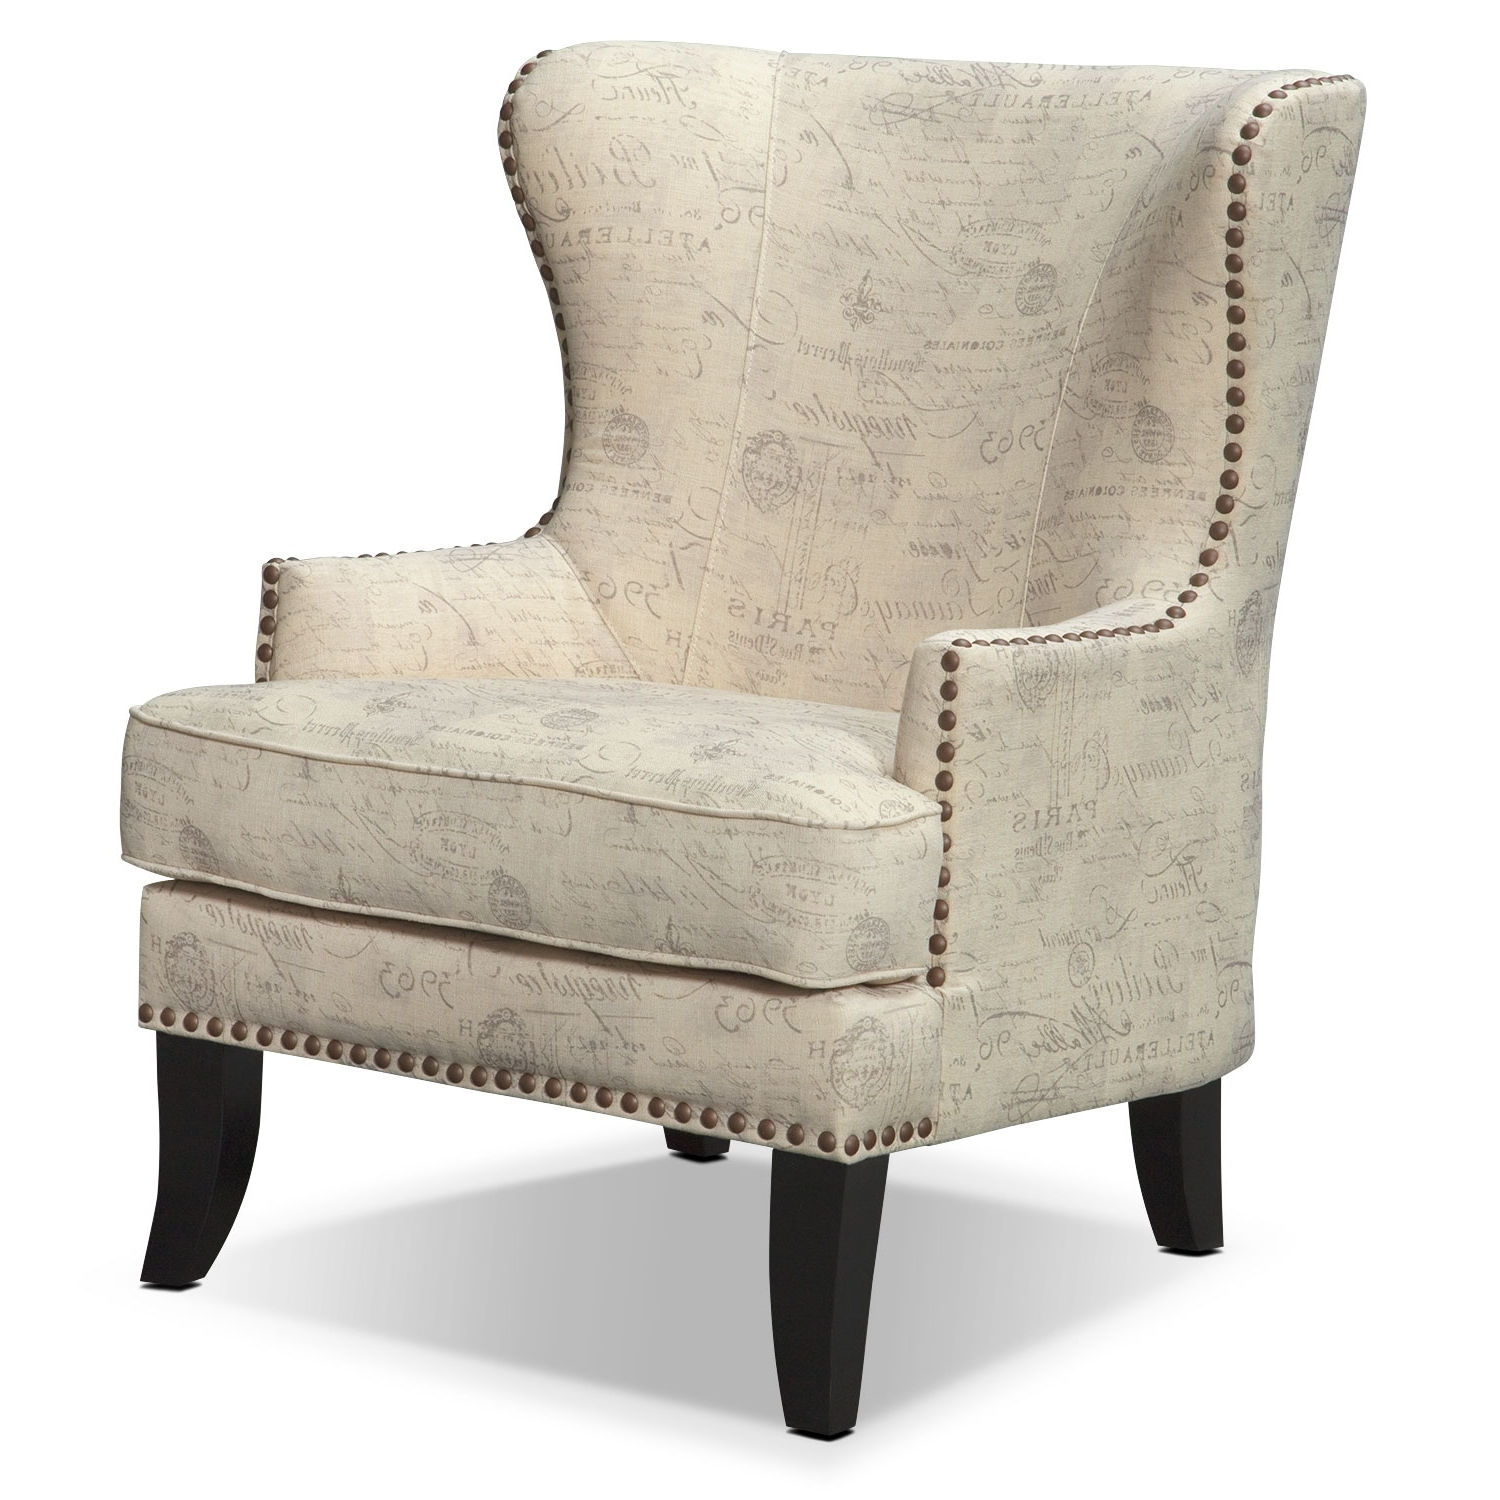 Best And Newest Marseille Accent Chair – Cream And Black (View 4 of 20)